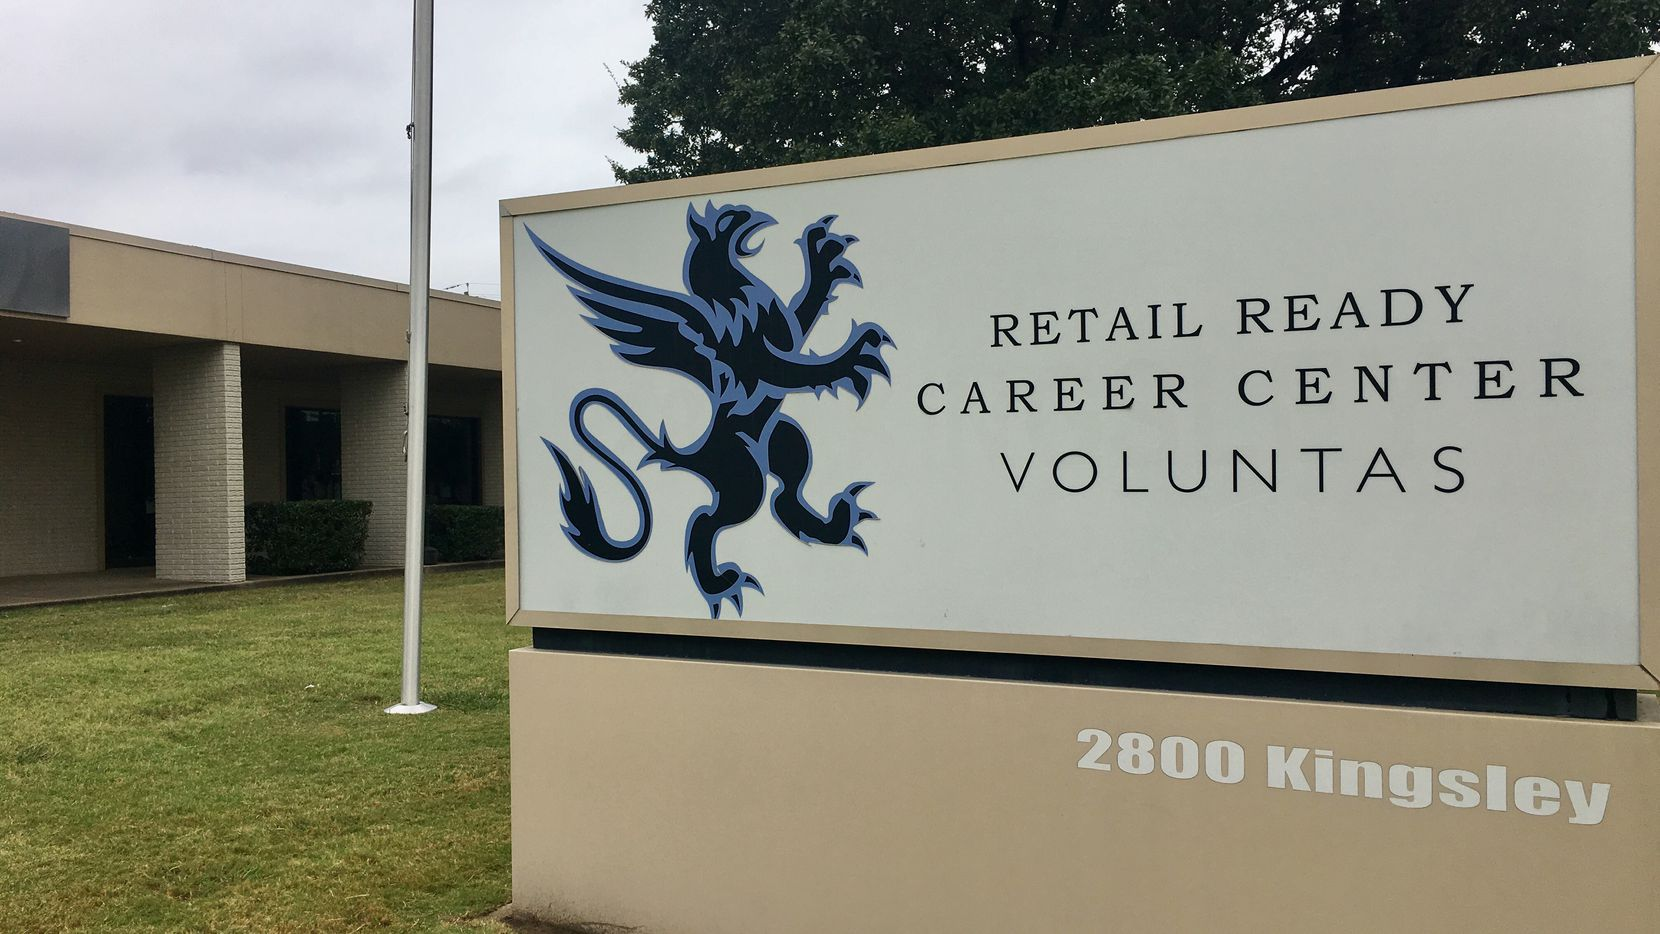 The Retail Ready Career Center in Garland suddenly closed on Sept. 27, leaving hundreds of veterans enrolled unsure of what's next.